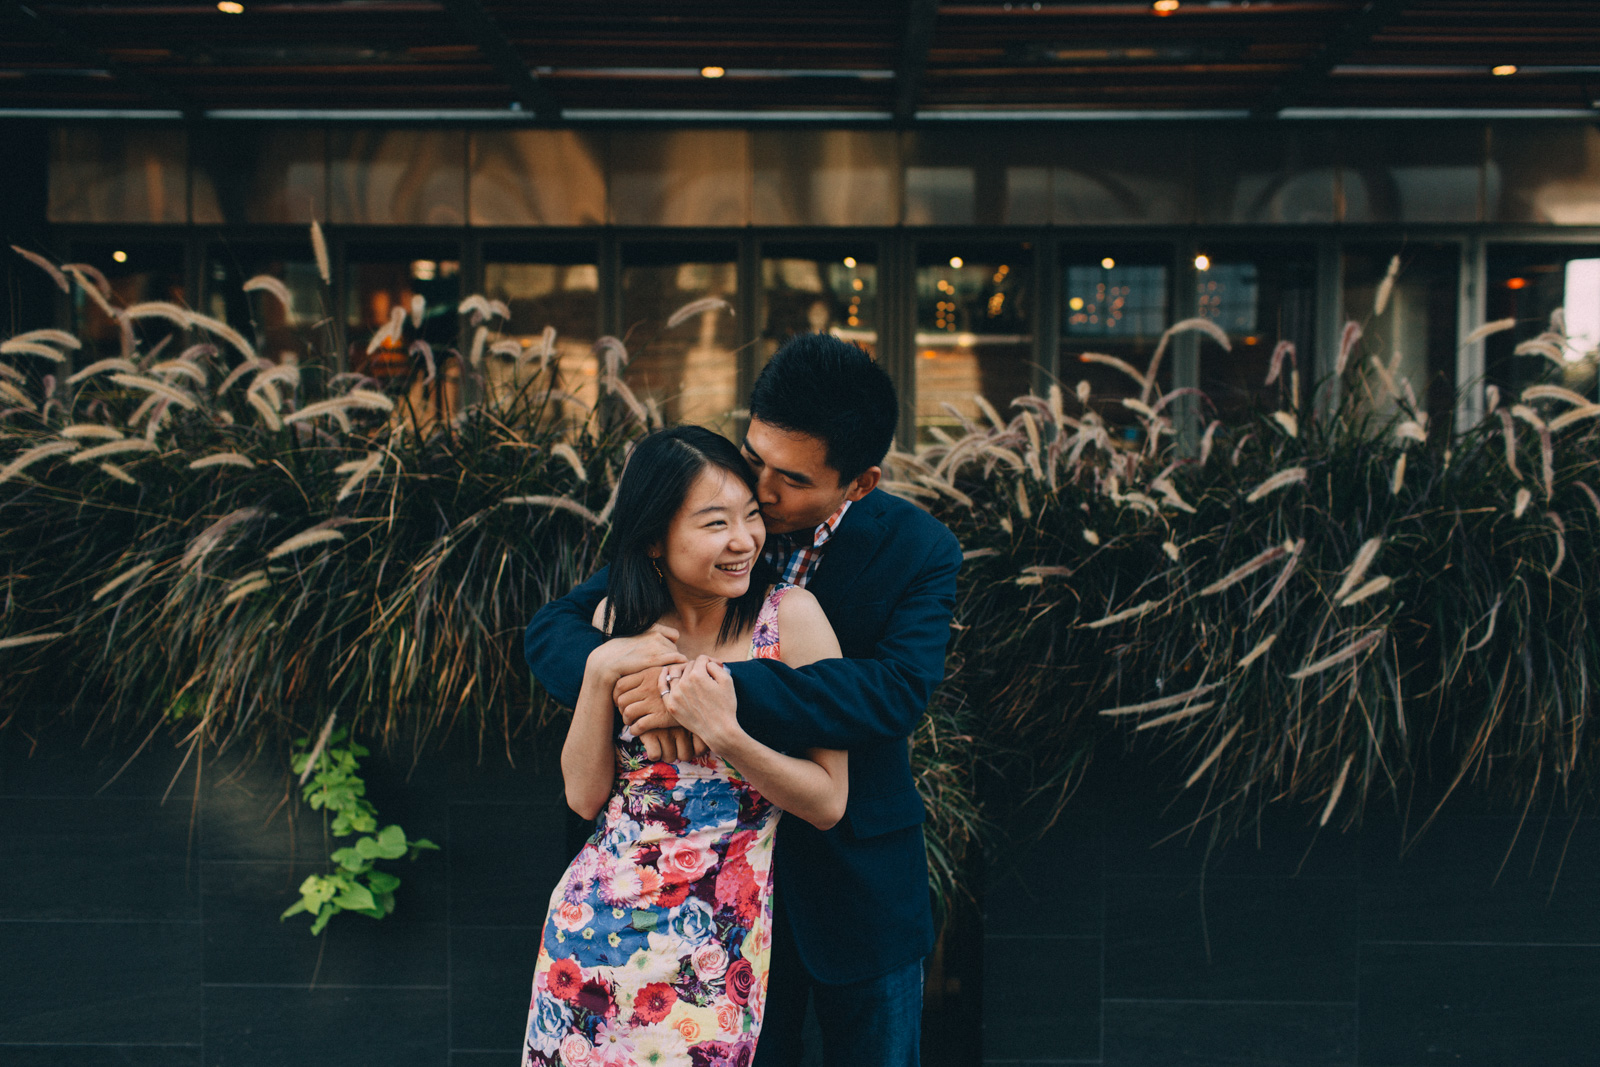 distillery-district-engagement-photos-toronto-wedding-photography-by-sam-wong-of-artanis-collective_003